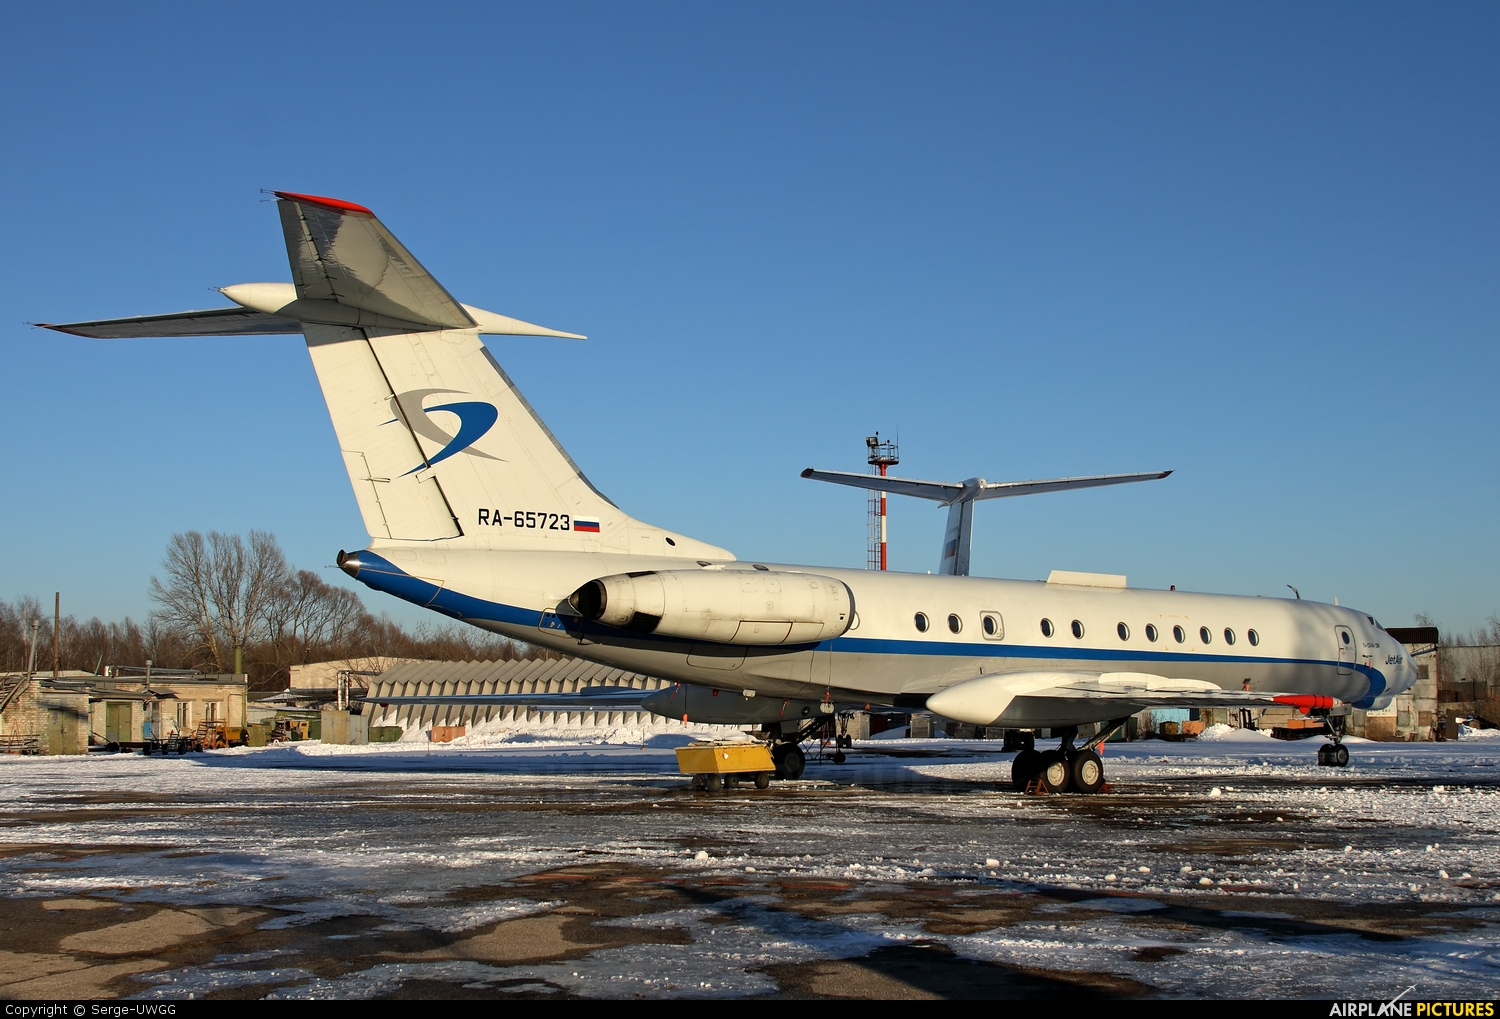 Jet Air Group (Russia) RA-65723 aircraft at Nizhniy Novgorod